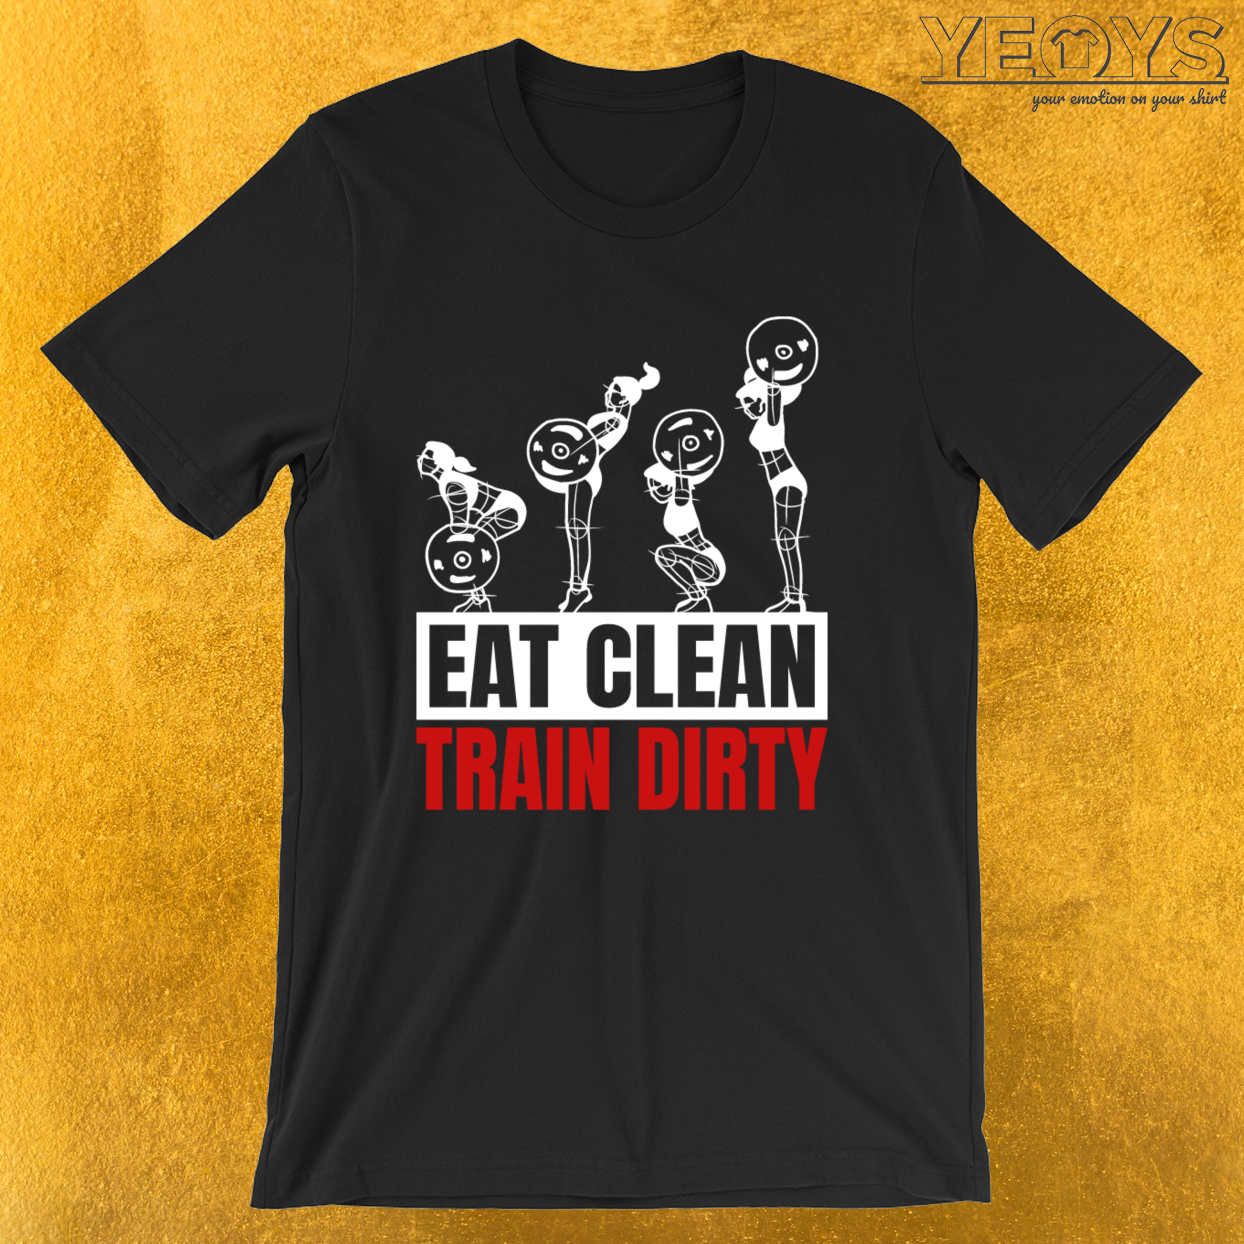 Eat Clean Train Dirty – Vegan Bodybuilding Tee